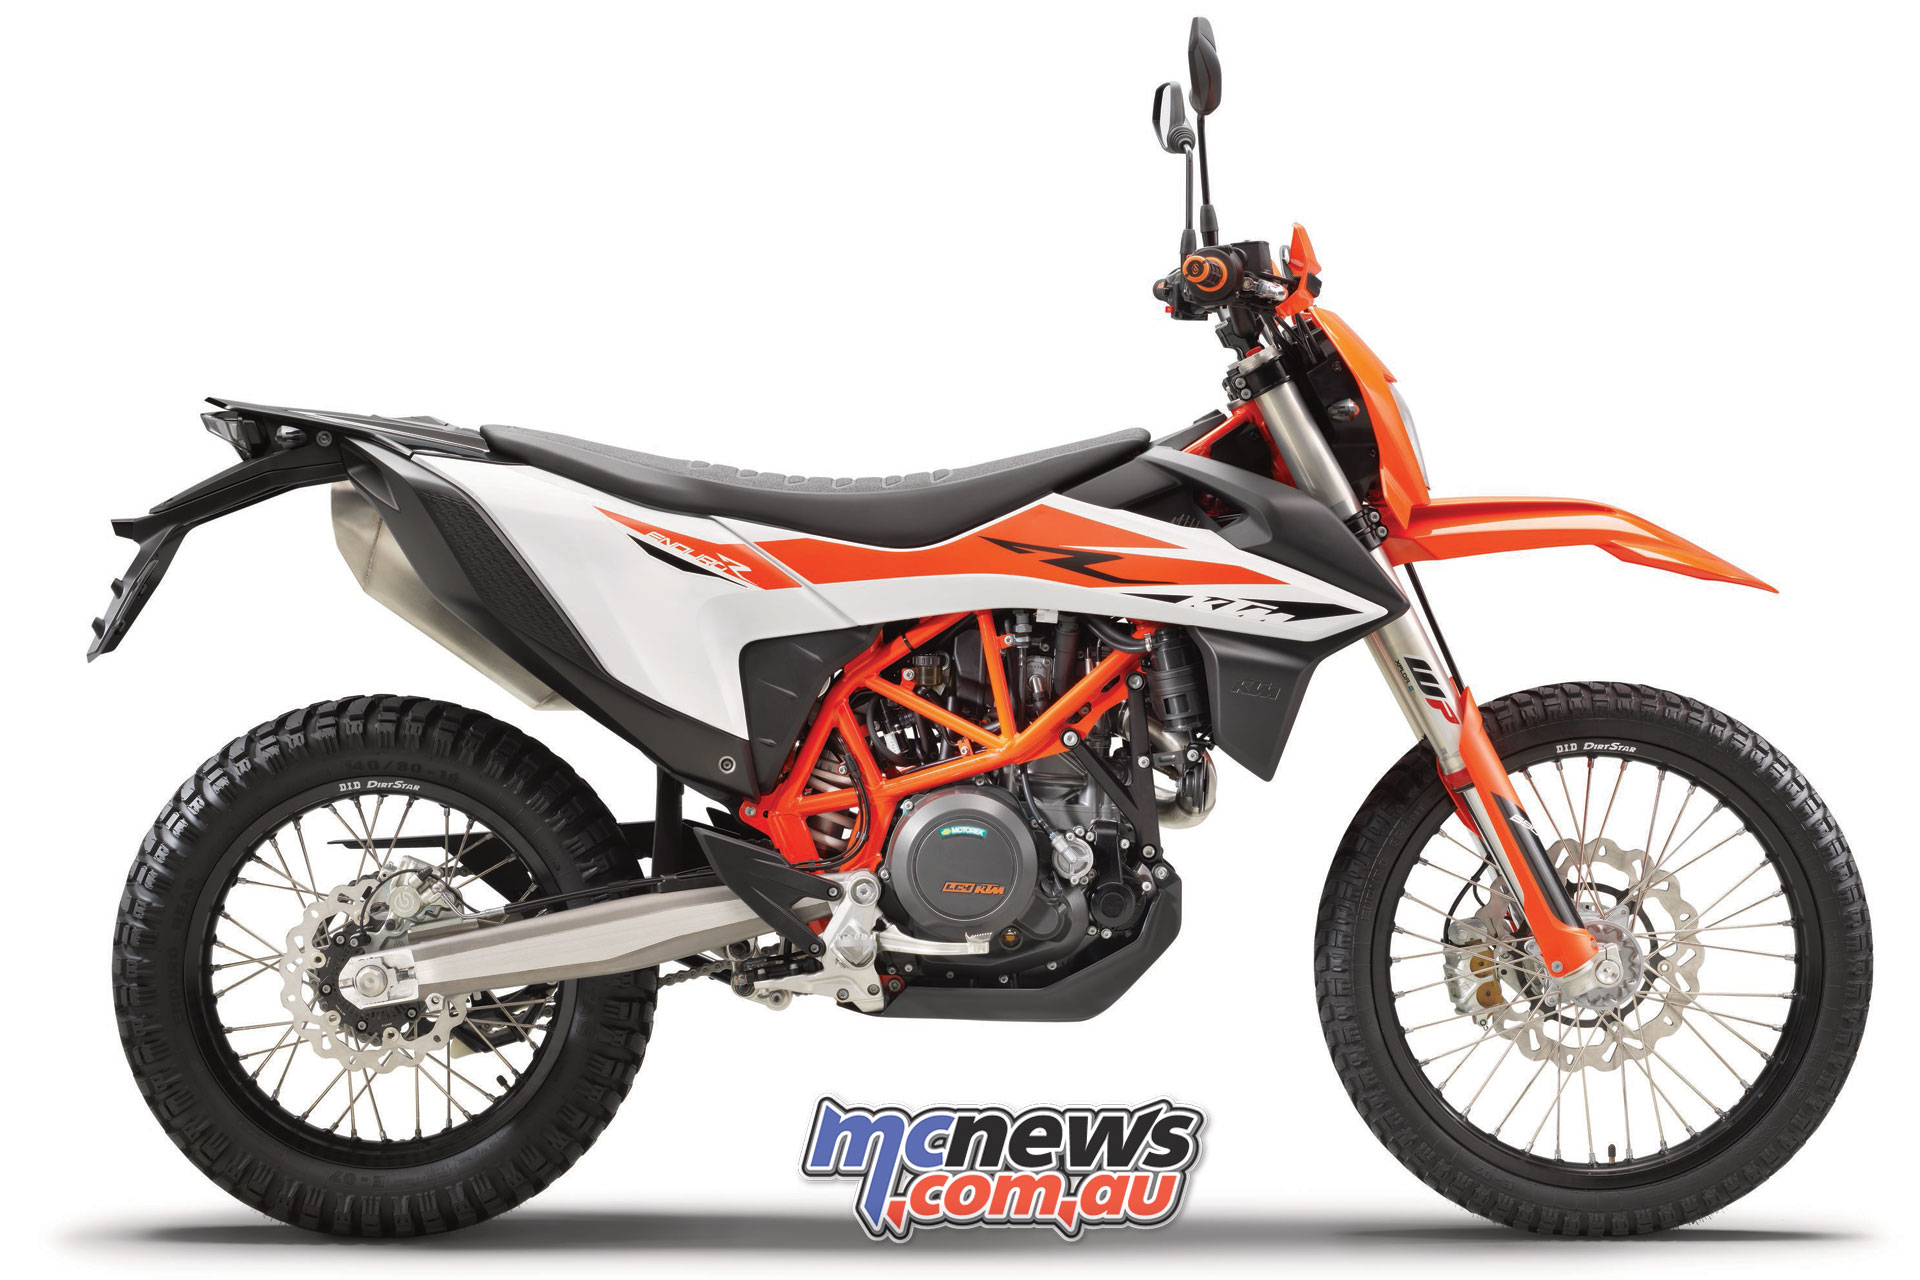 2019 Ktm 690 Enduro R More Power Smoother Power